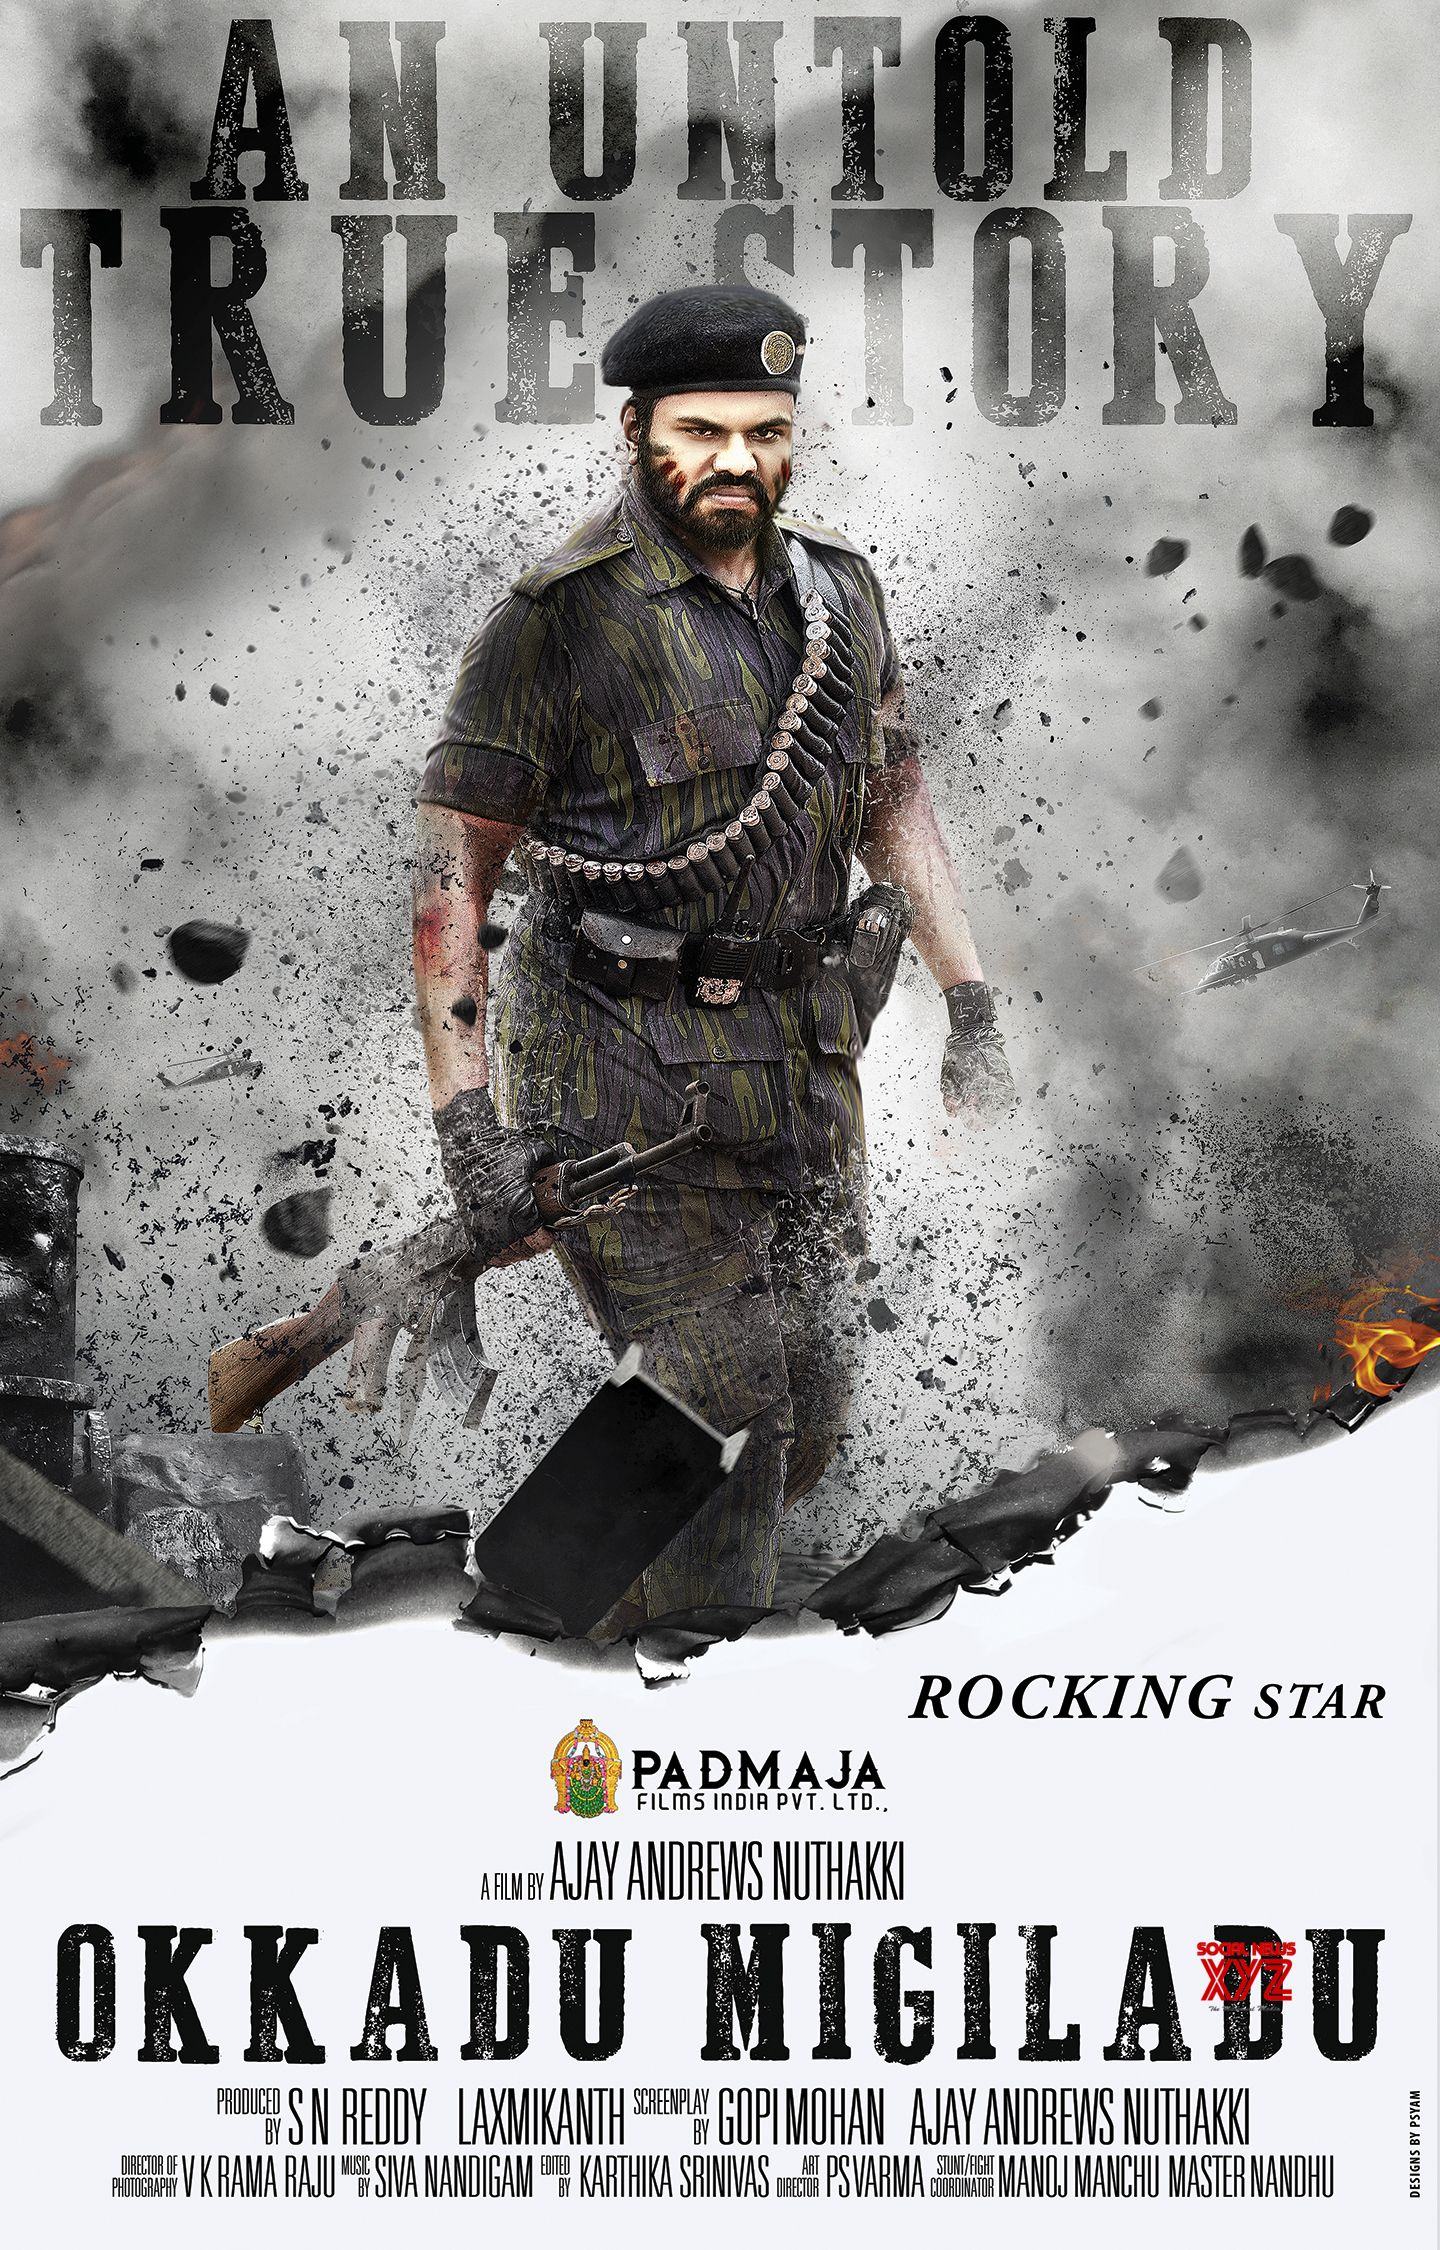 Second Look Poster Of Manchu Manoj From Okkadu Migiladu